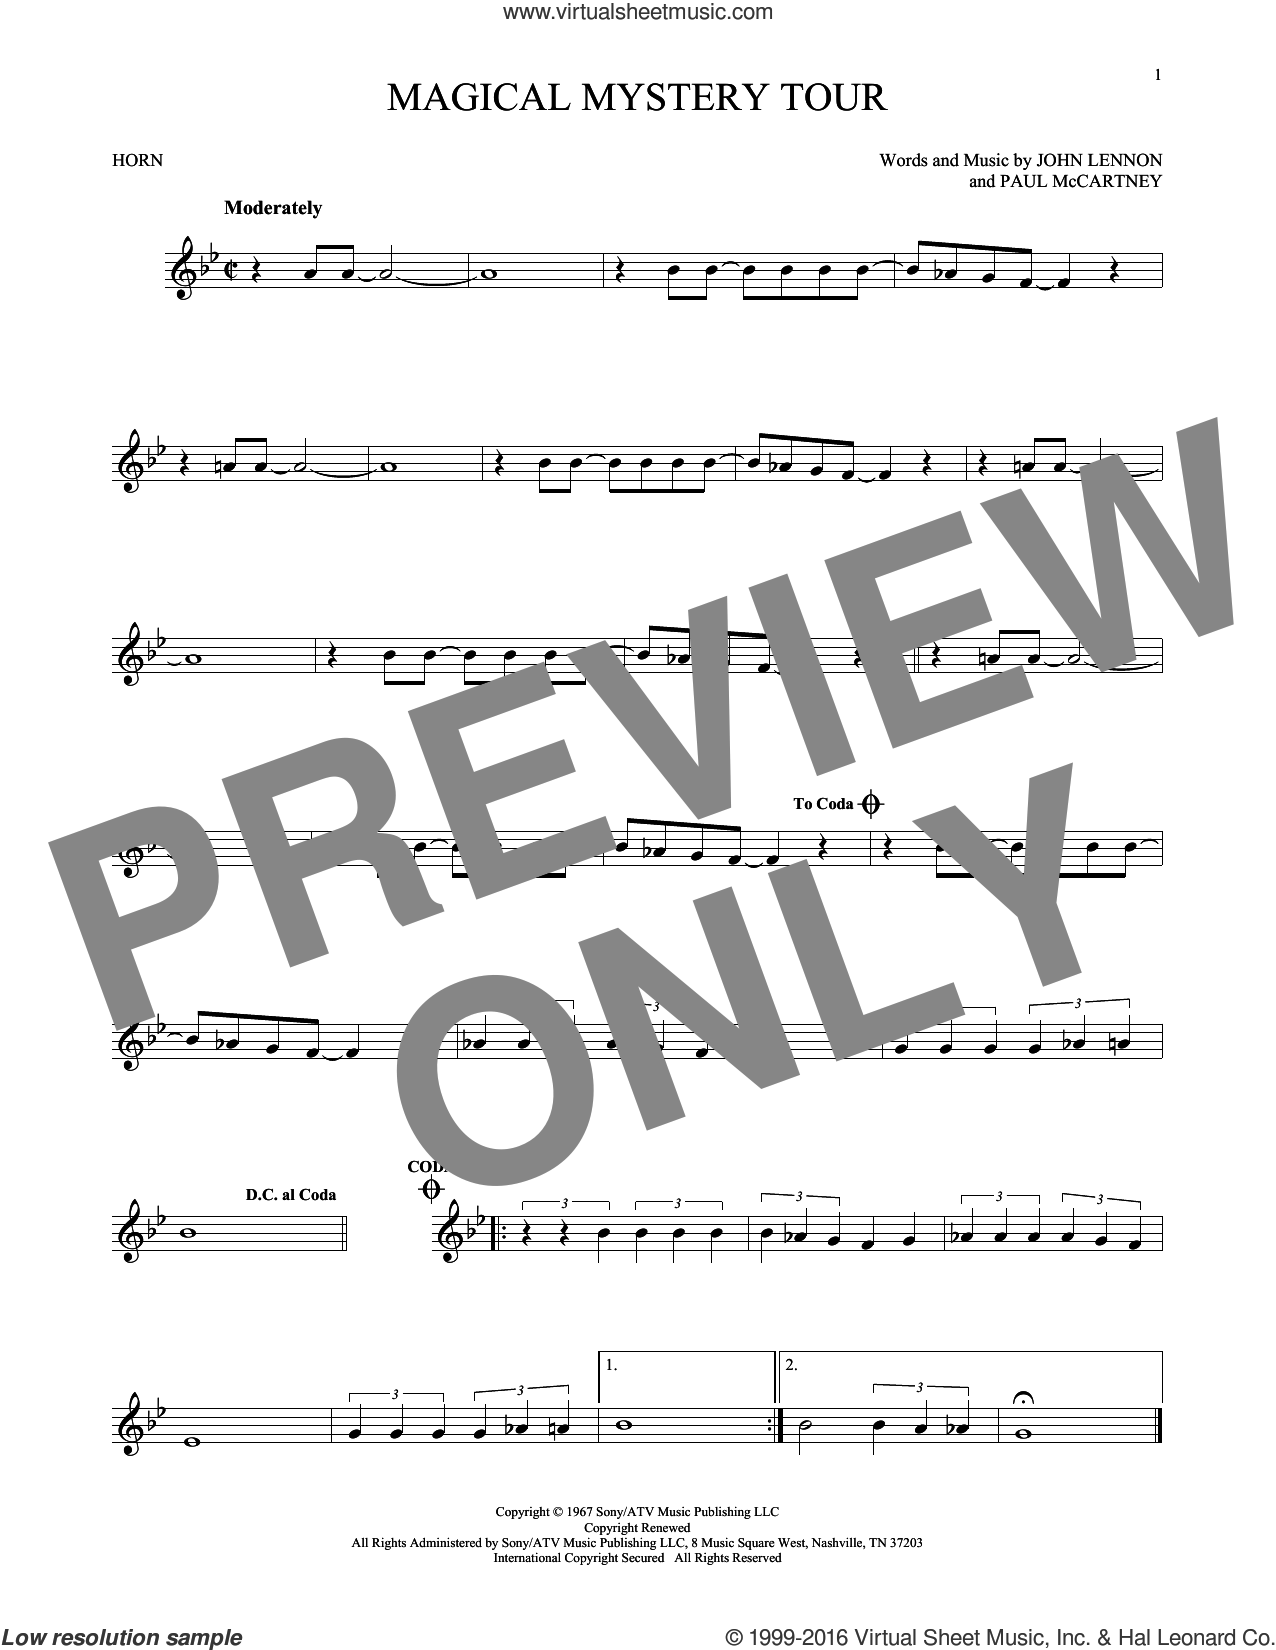 Magical Mystery Tour sheet music for horn solo by The Beatles, John Lennon and Paul McCartney, intermediate skill level